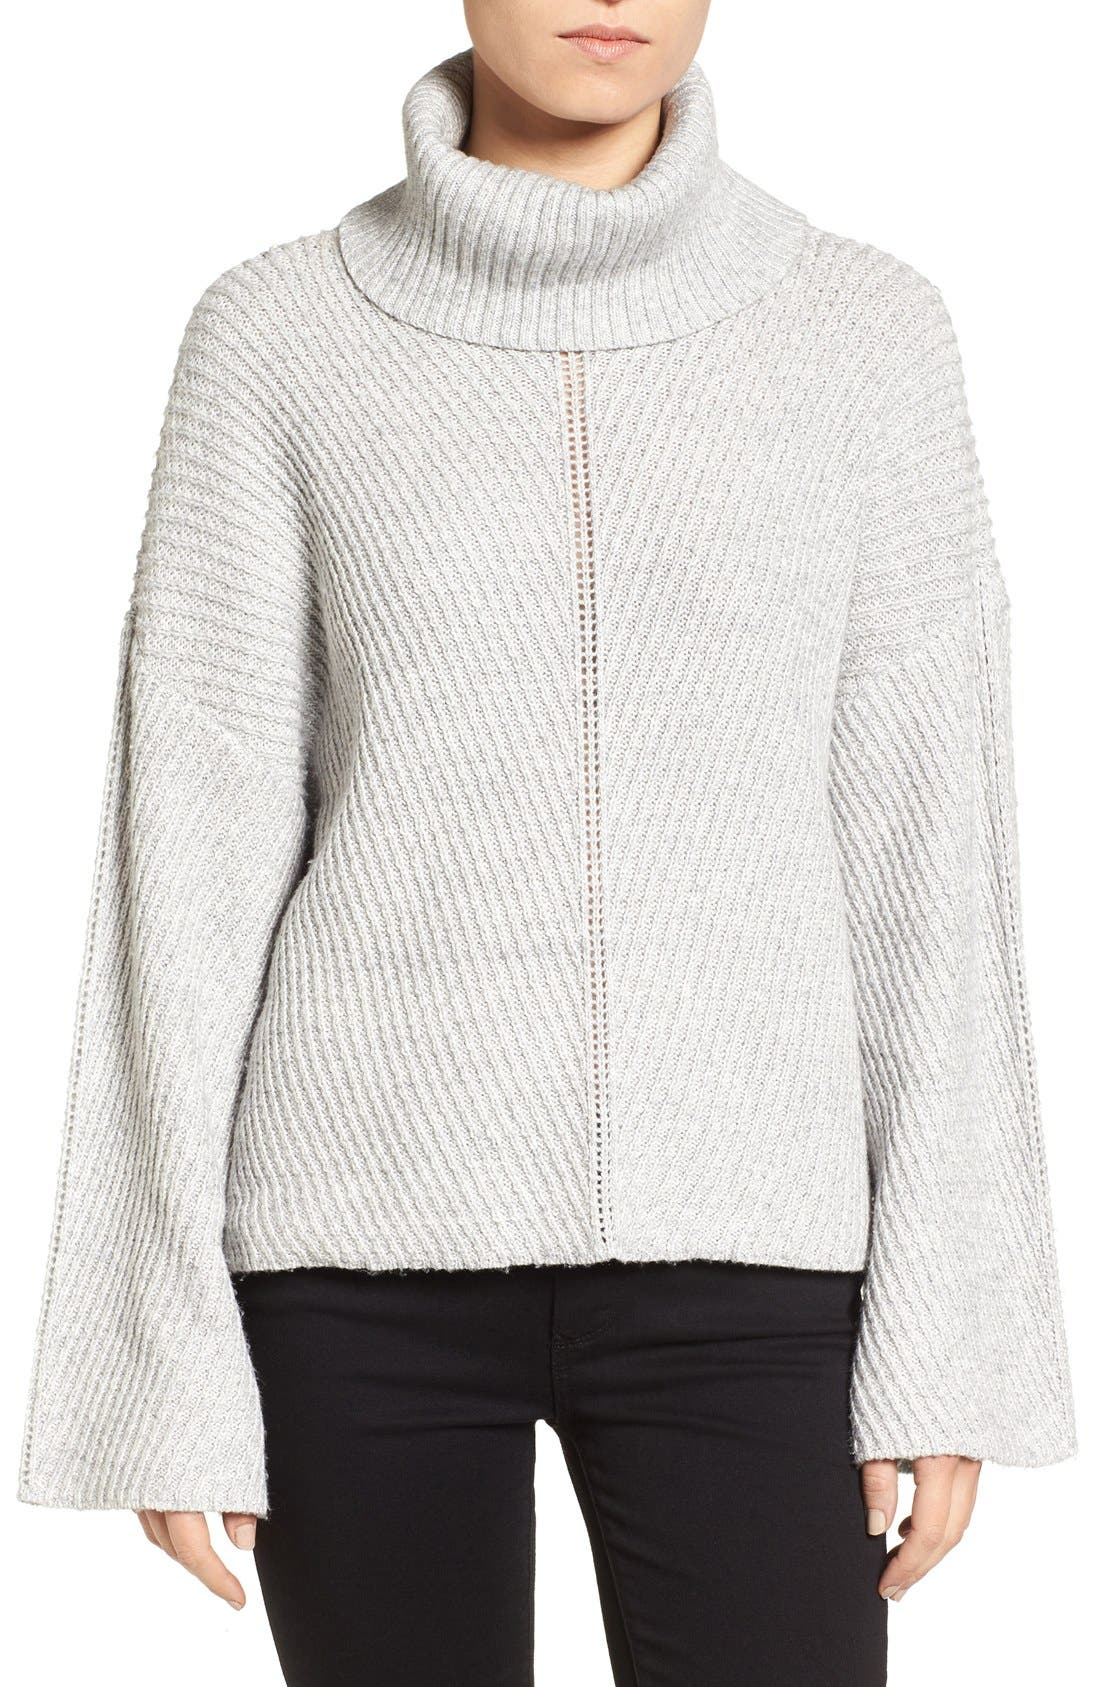 Phil Slouchy Sweater,                         Main,                         color, 057